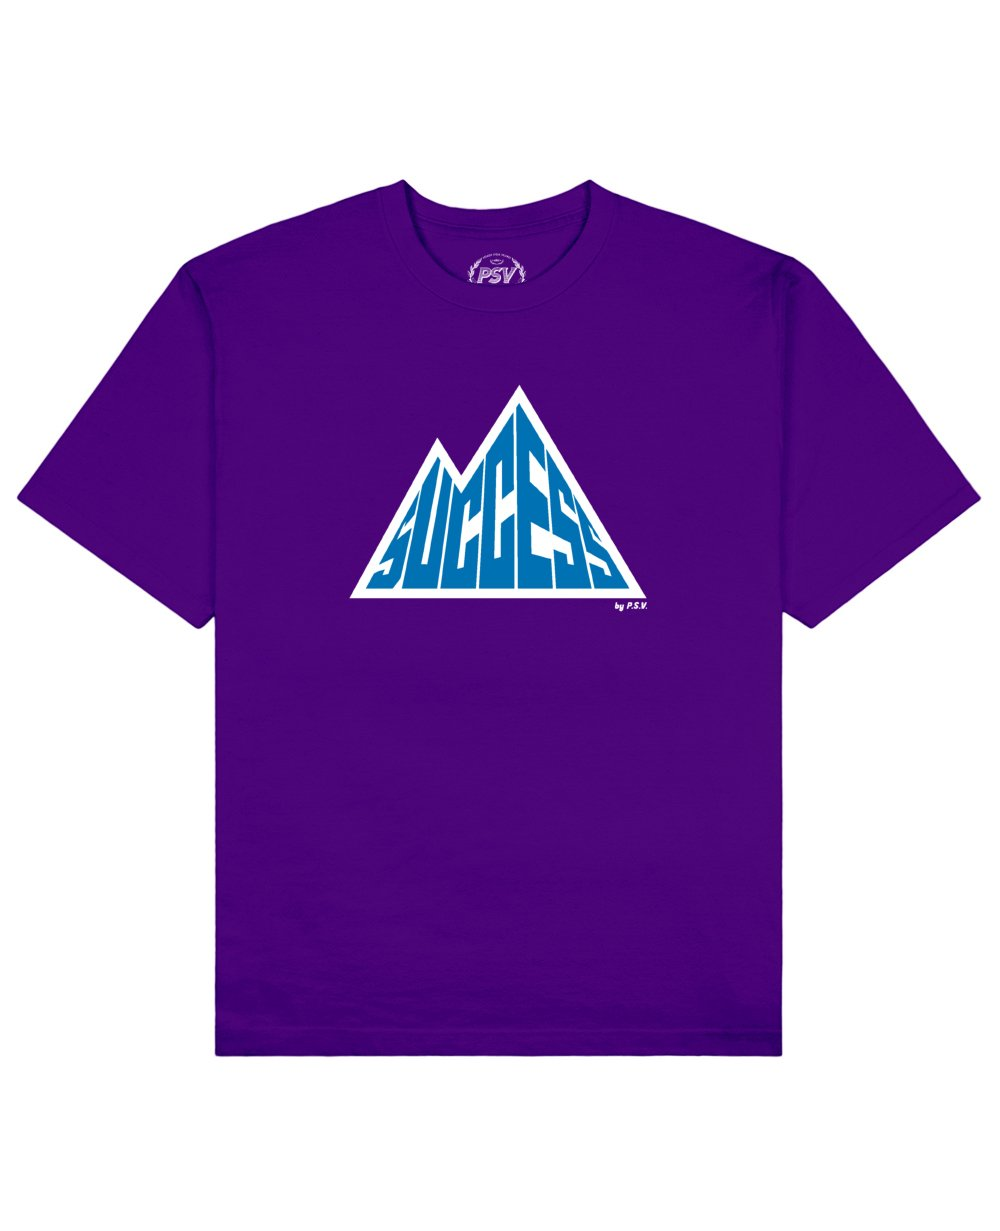 Success is a Mountain Print T-Shirt in Purple - T-Shirts - PSV - BRANMA